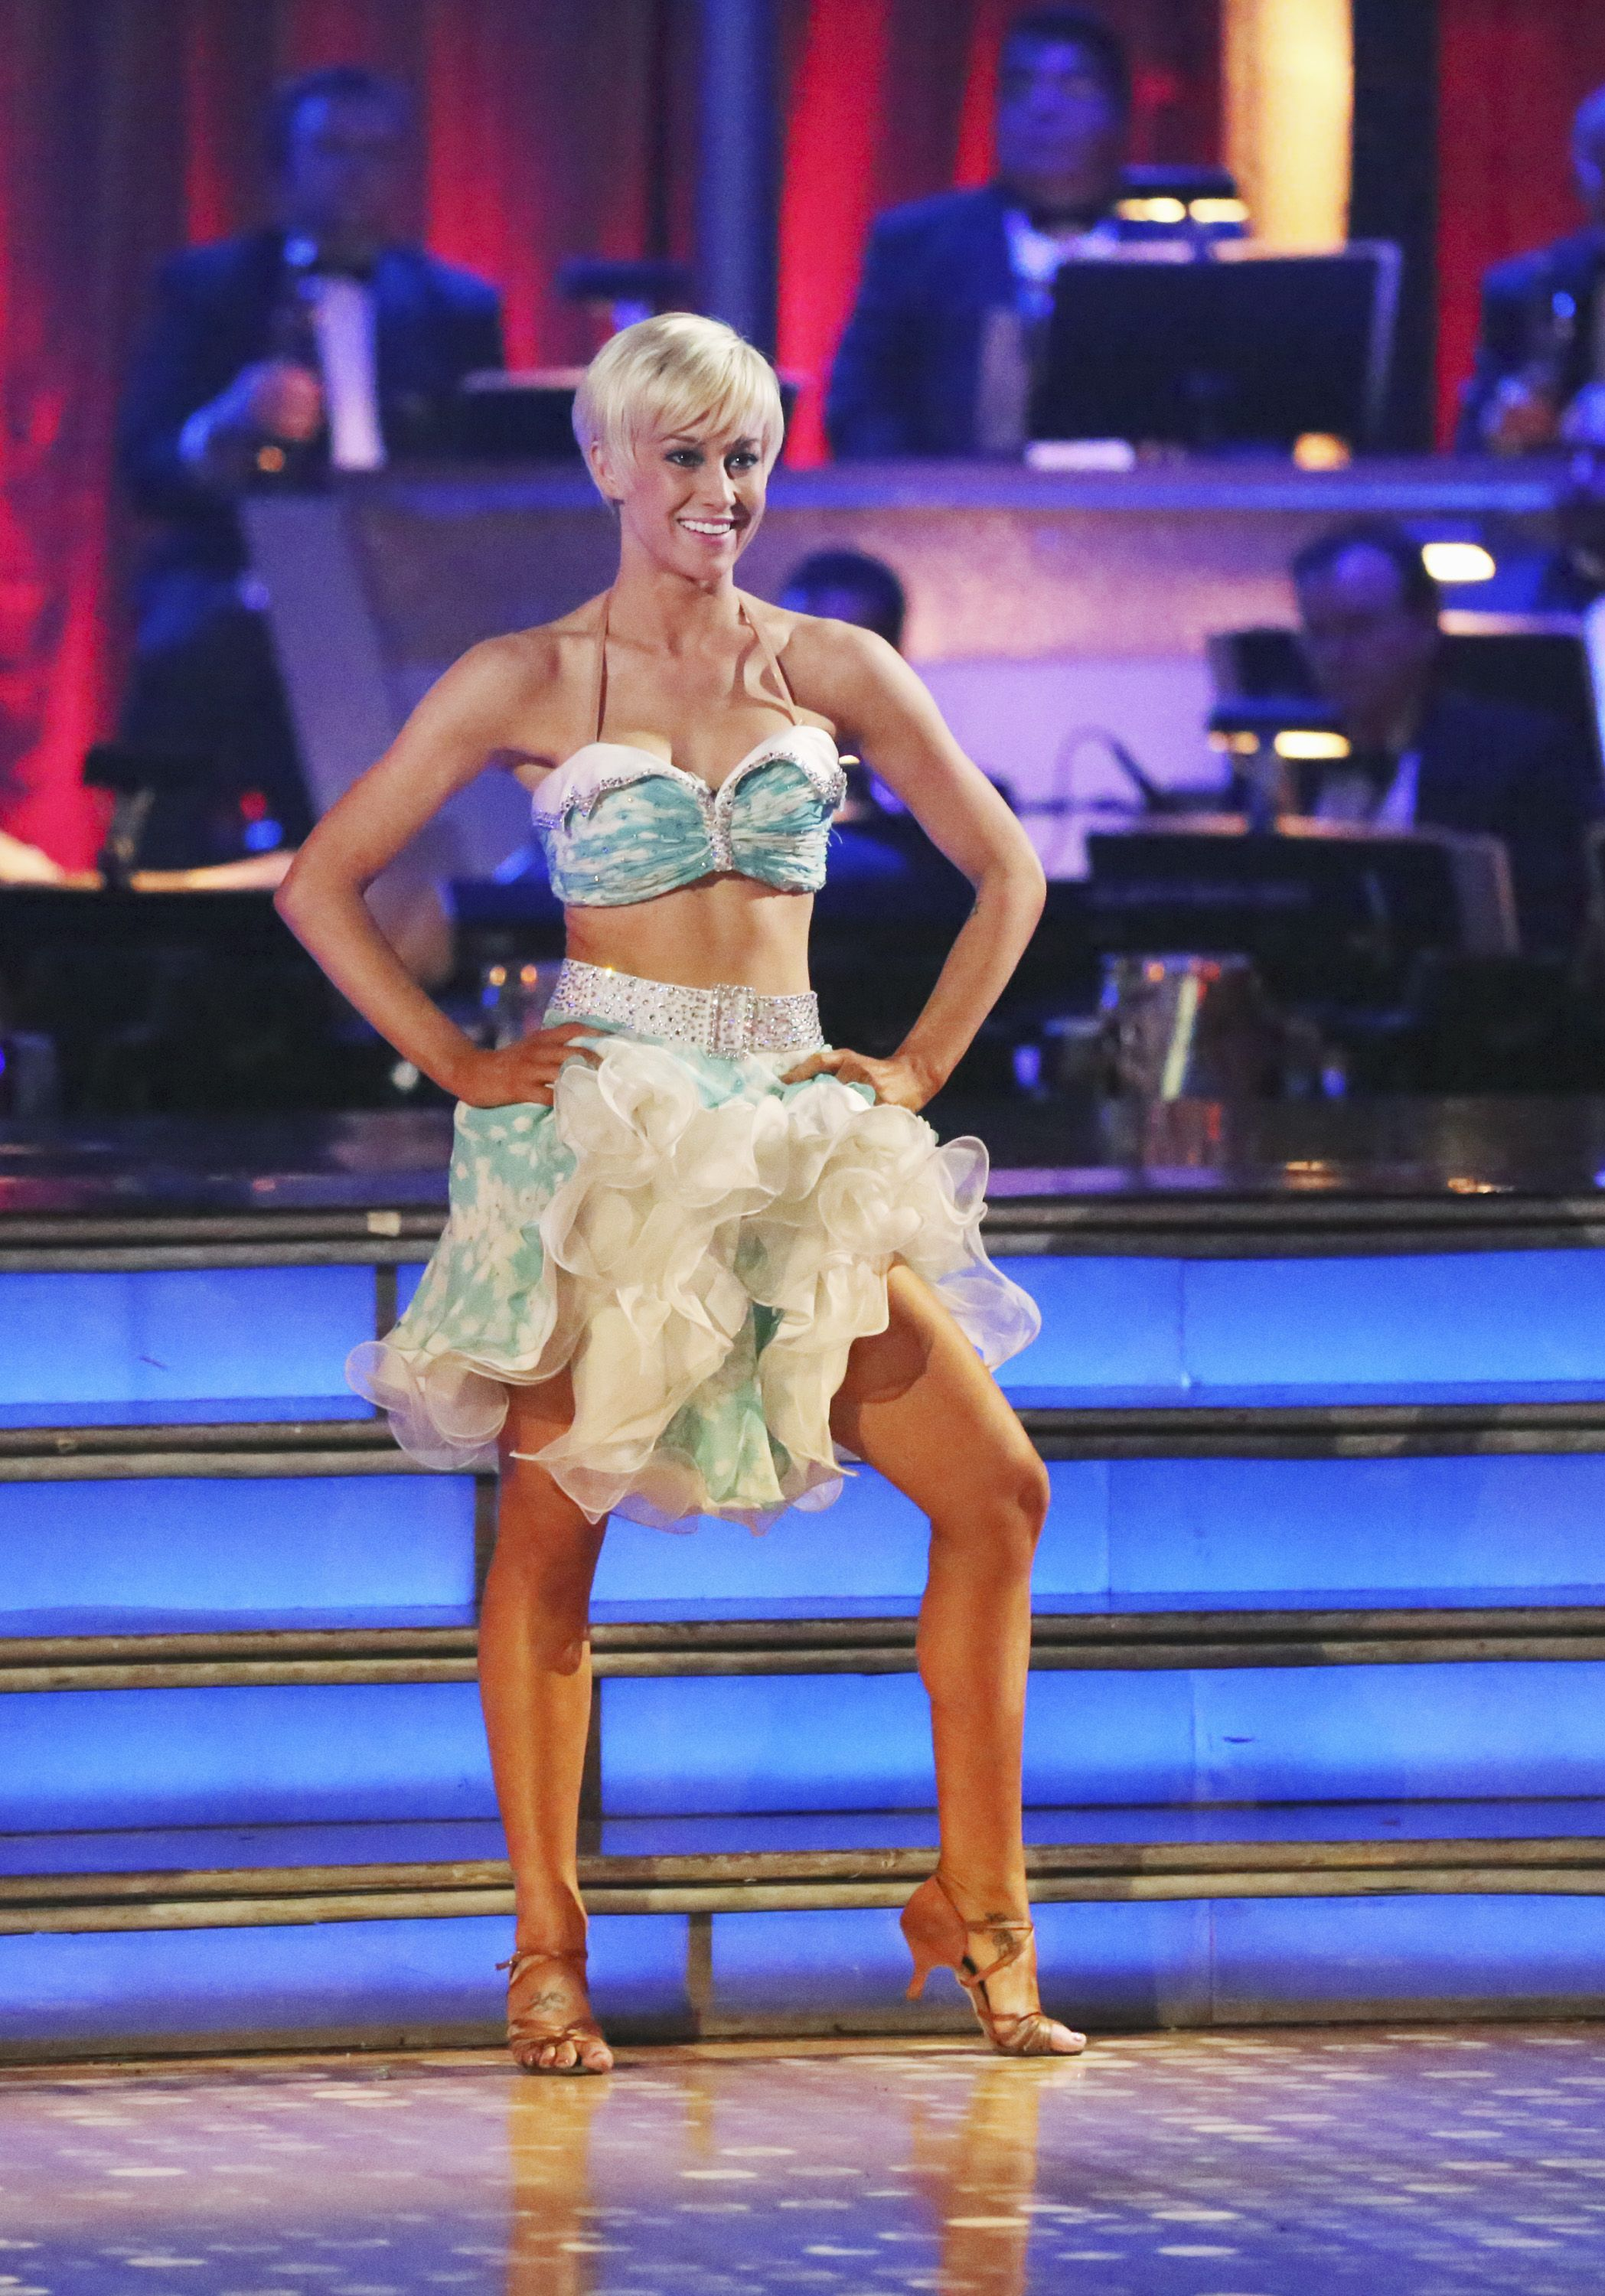 Dancing With The Stars Music The Tennessean Dancing With The Stars Kellie Pickler Music Star